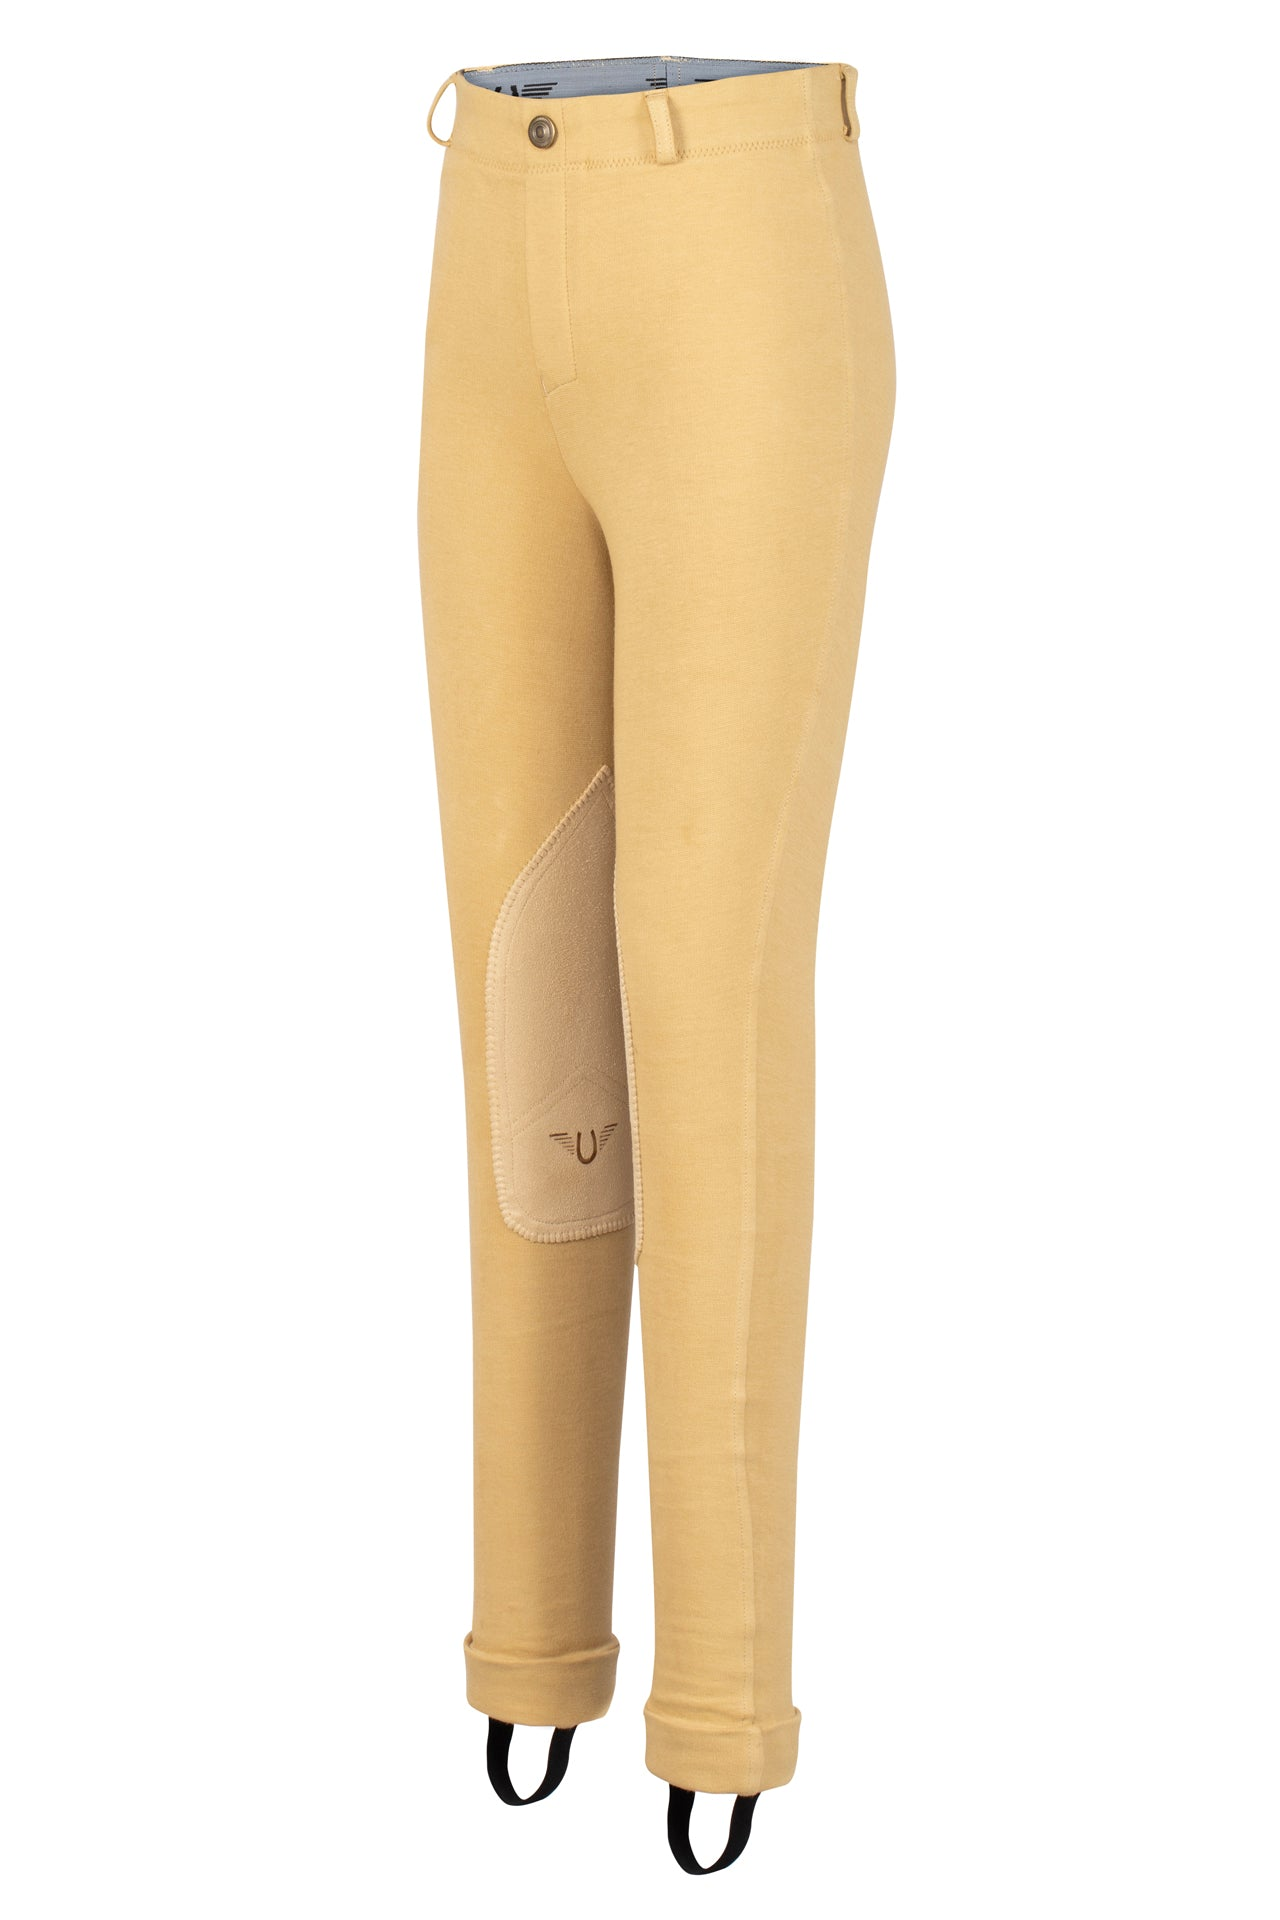 TuffRider Children's Cotton Pull-On Jodhpurs - TuffRider - Breeches.com